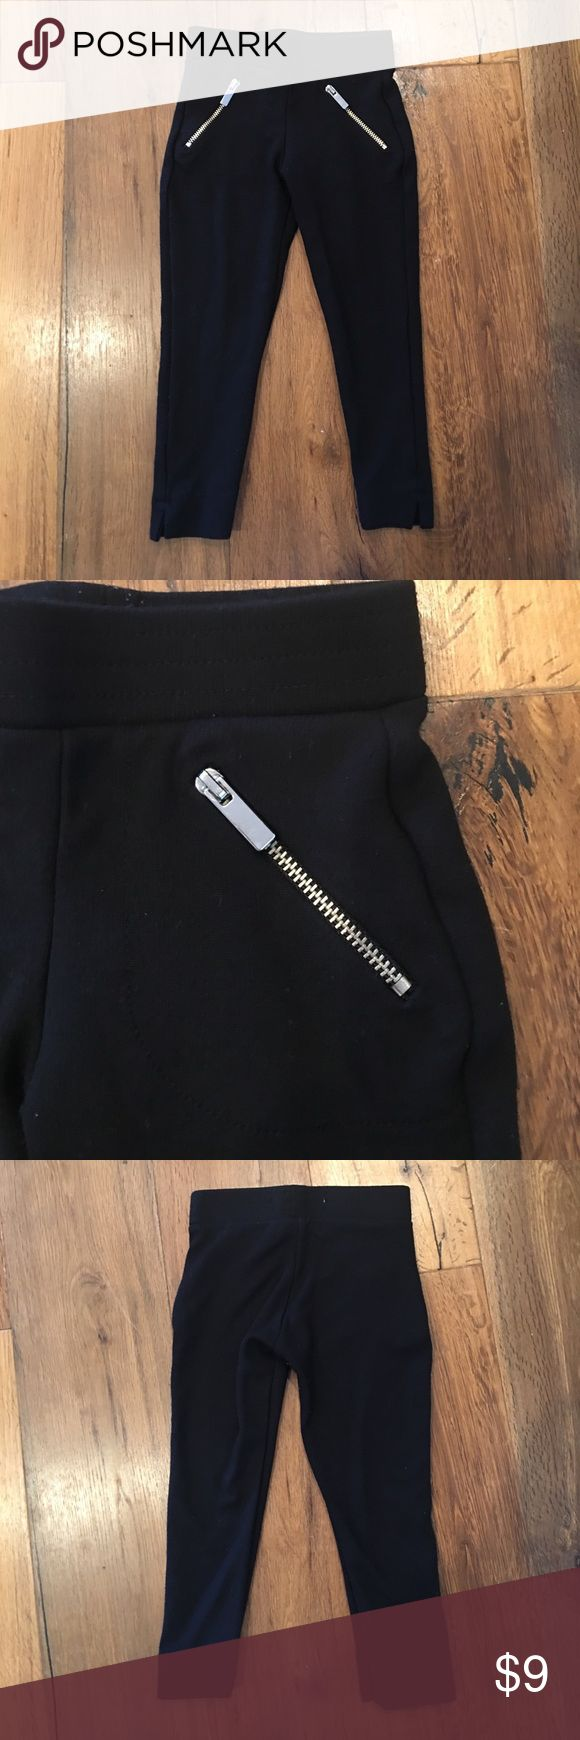 Zara Silver Zipper Leggings Thick black legging from Zara. Cute silver zipper detailing. Good used condition. Slight piling that is standard after one wash.  Runs on the small side. Zara Bottoms Leggings